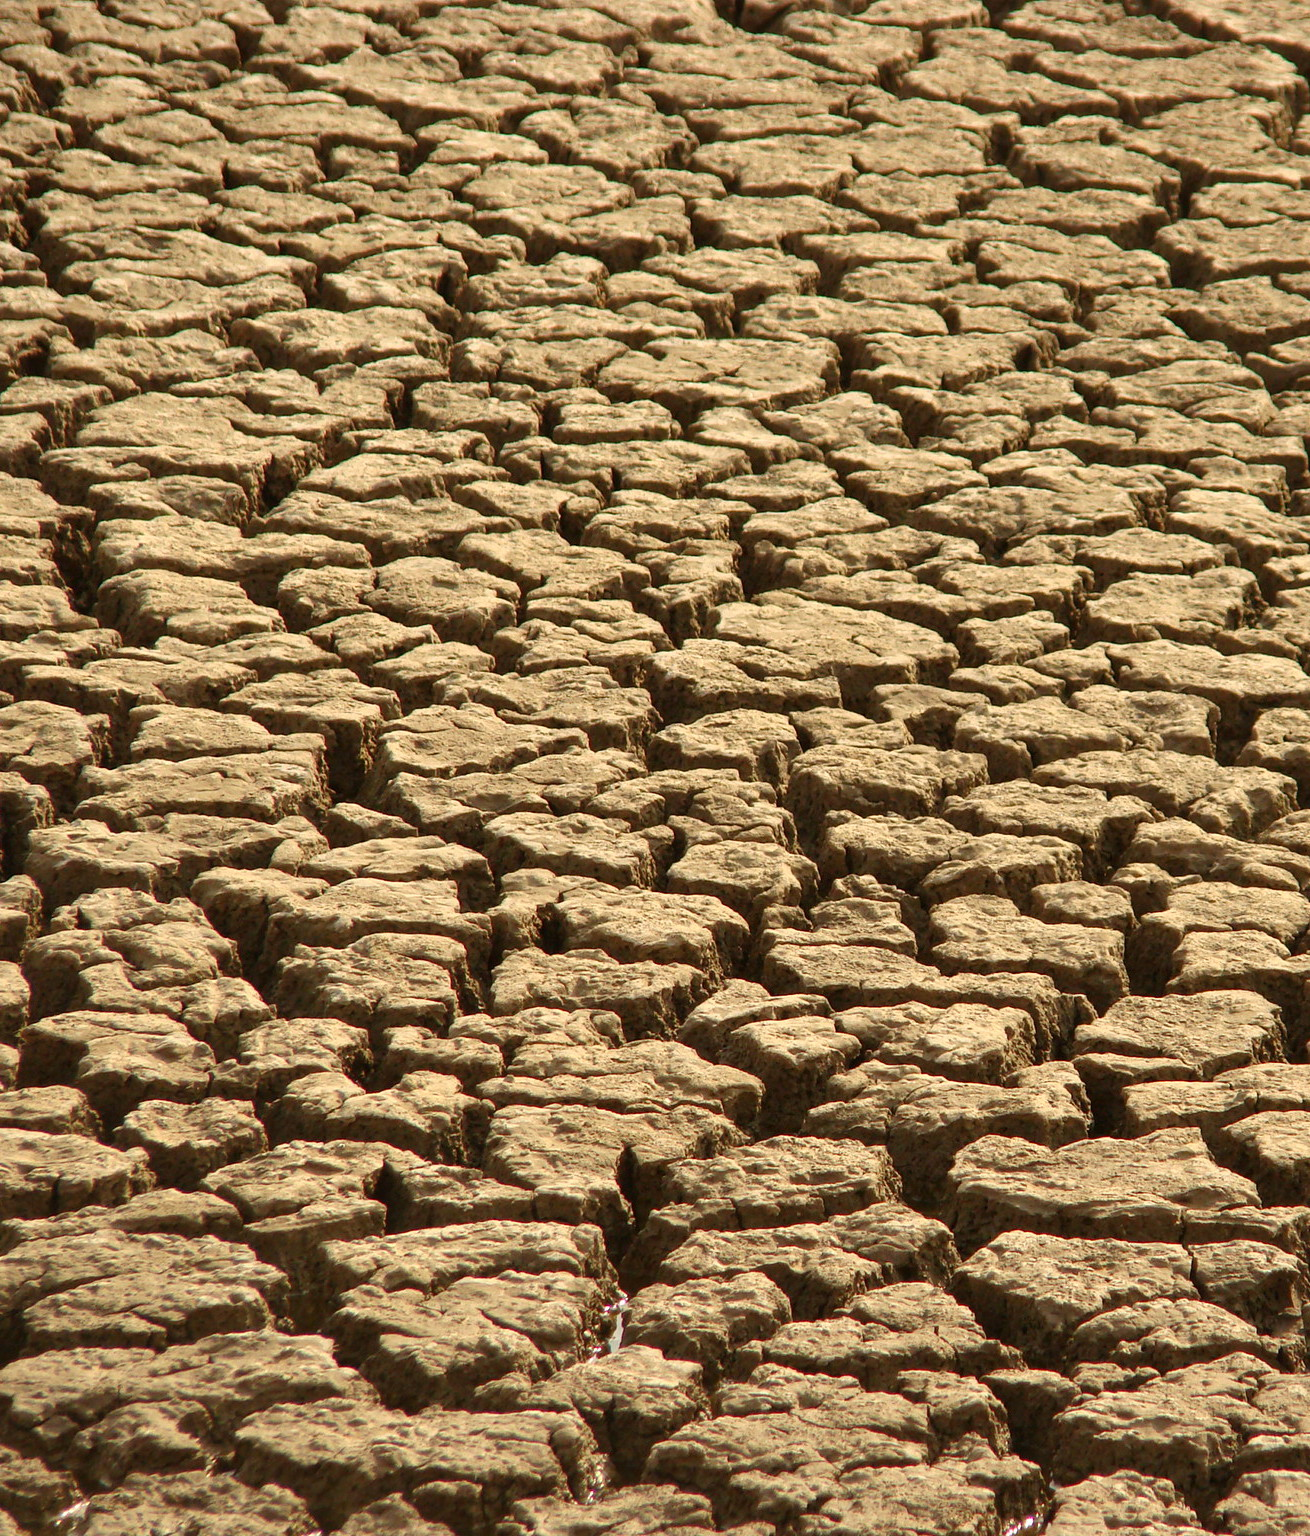 WCC praises commitment